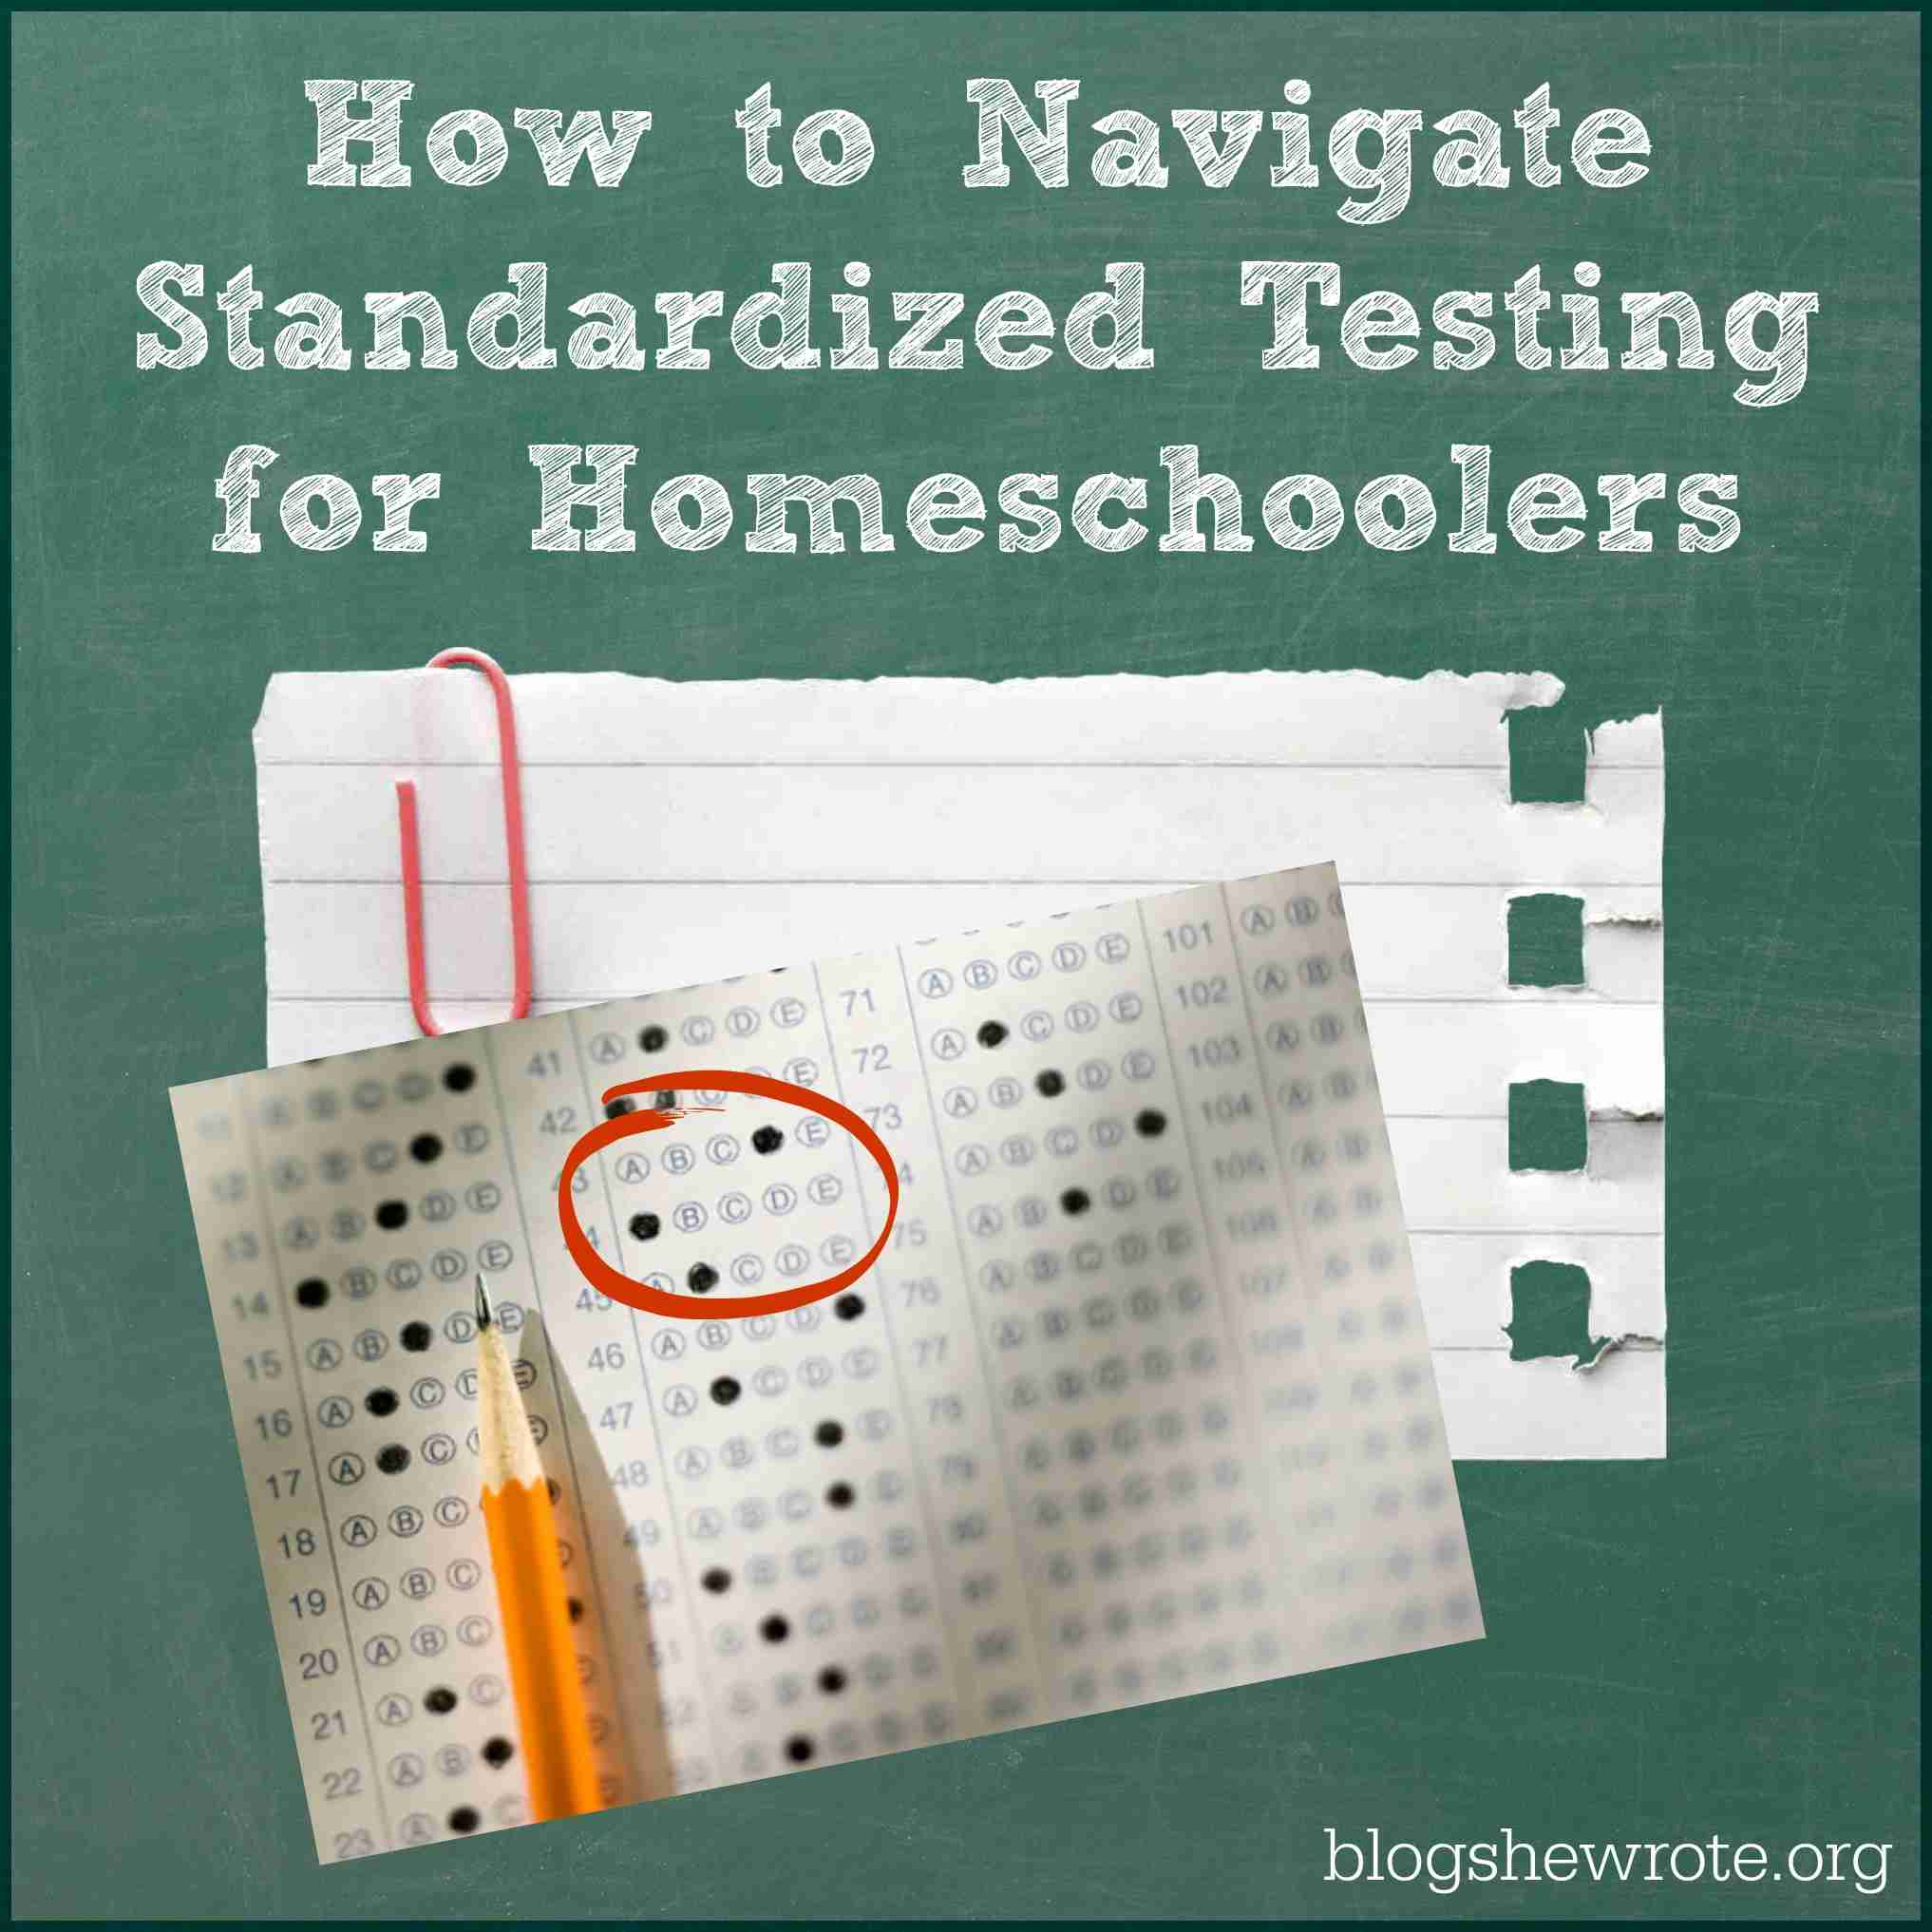 ... to Navigate Standardized Testing for Homeschoolers - Blog, She Wrote